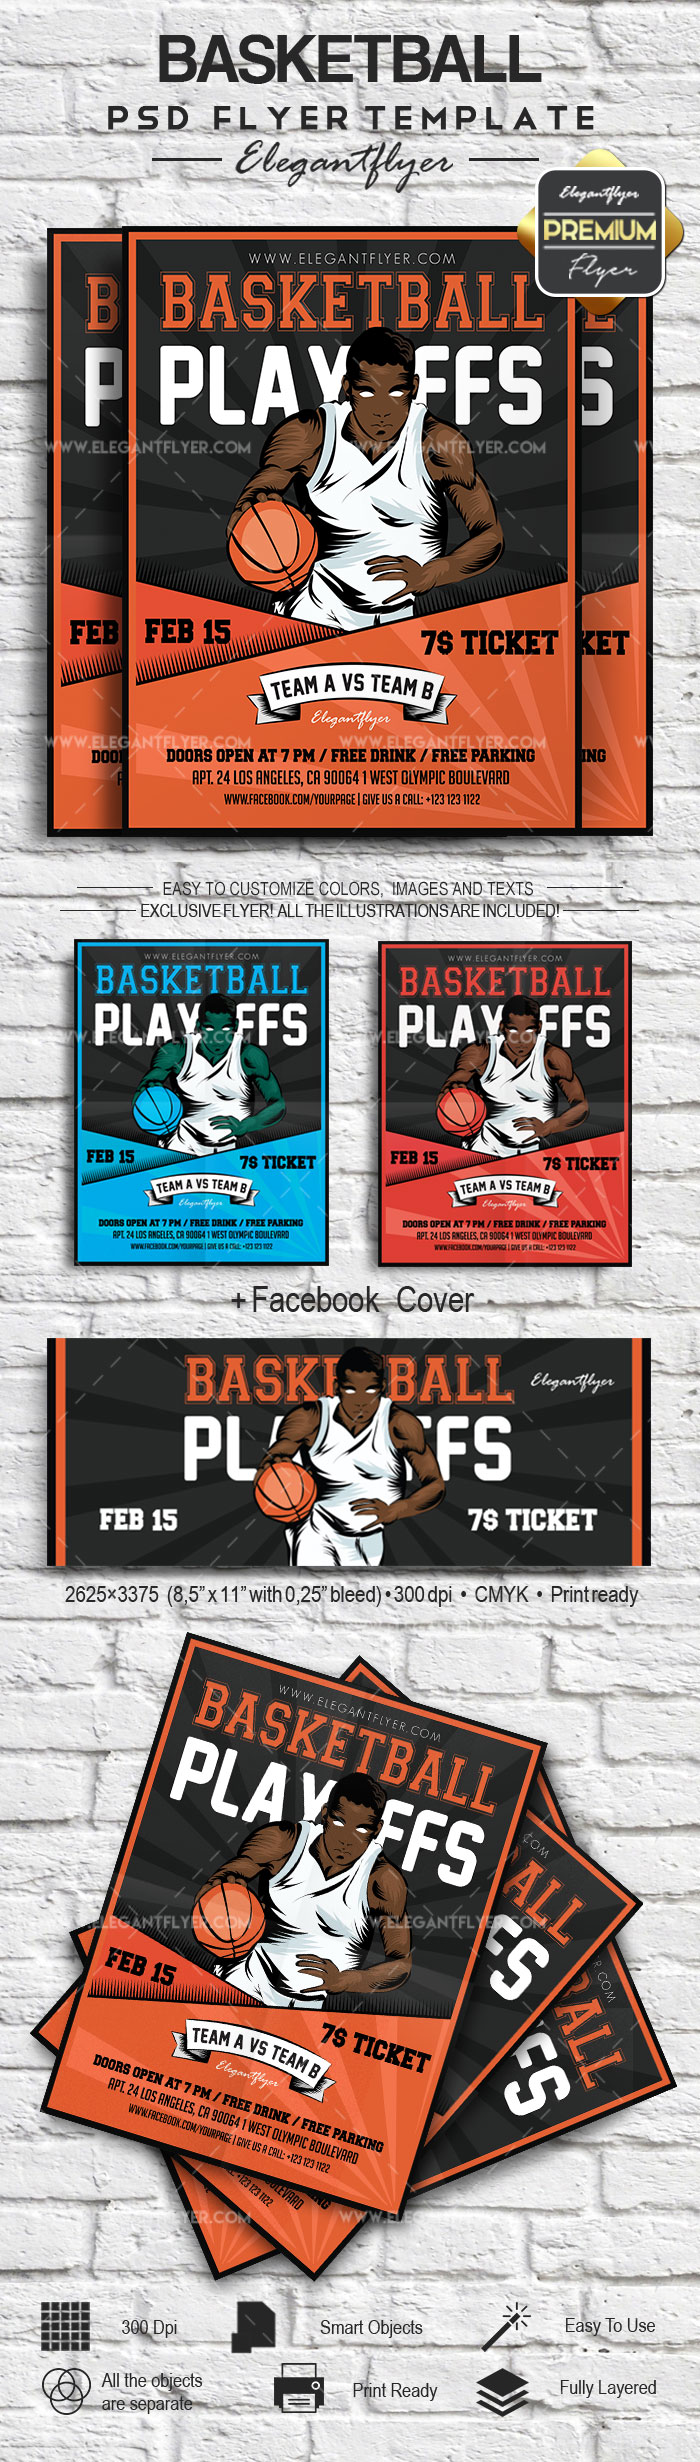 Flyer for basketball playoffs Template